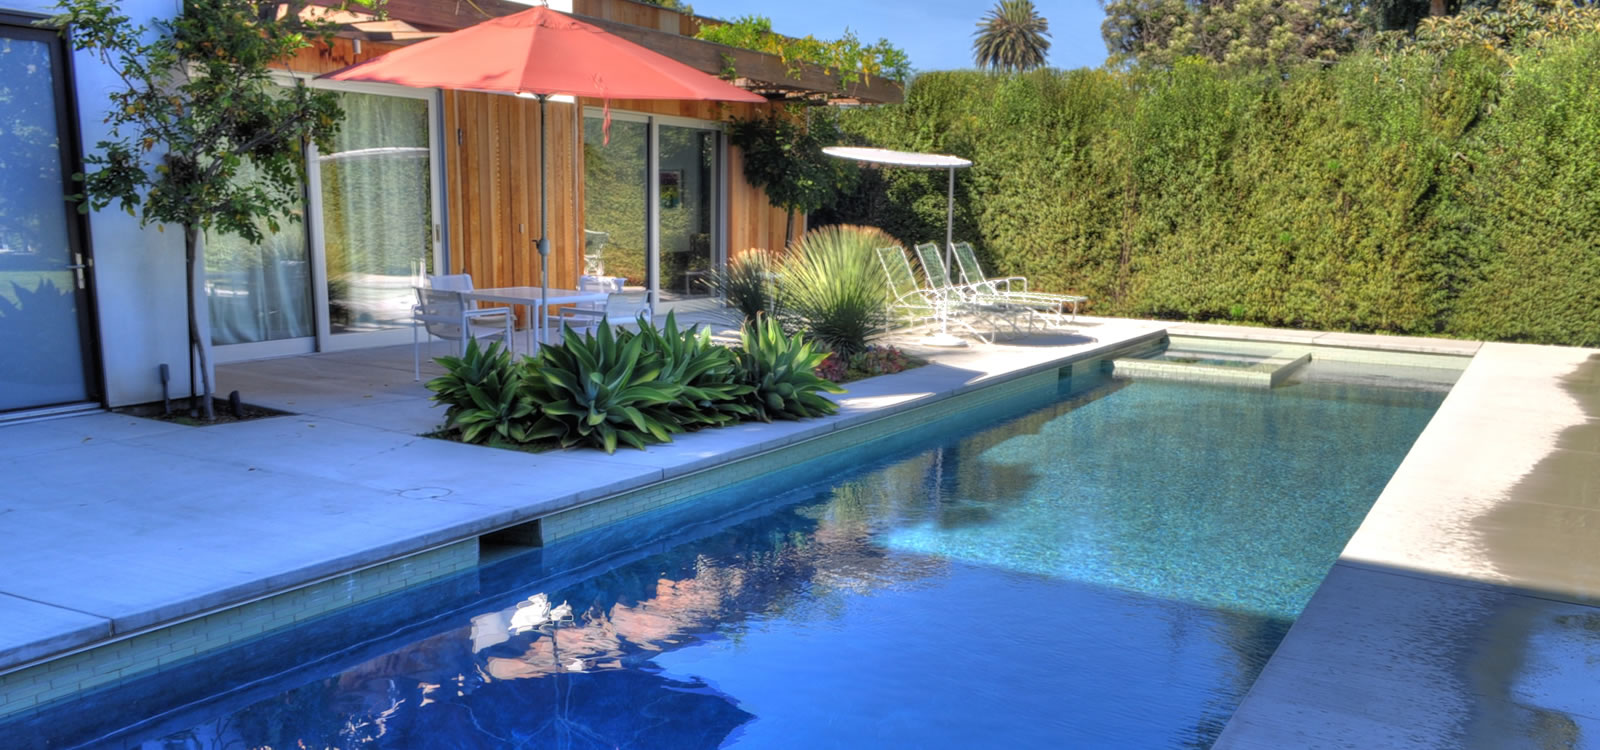 Pool Designers swimming pool designer swimming pool designers with goodly entrancing design ideas of best collection swimming In House Staff Of Landscapers Pool Designers And Hardscape Experts